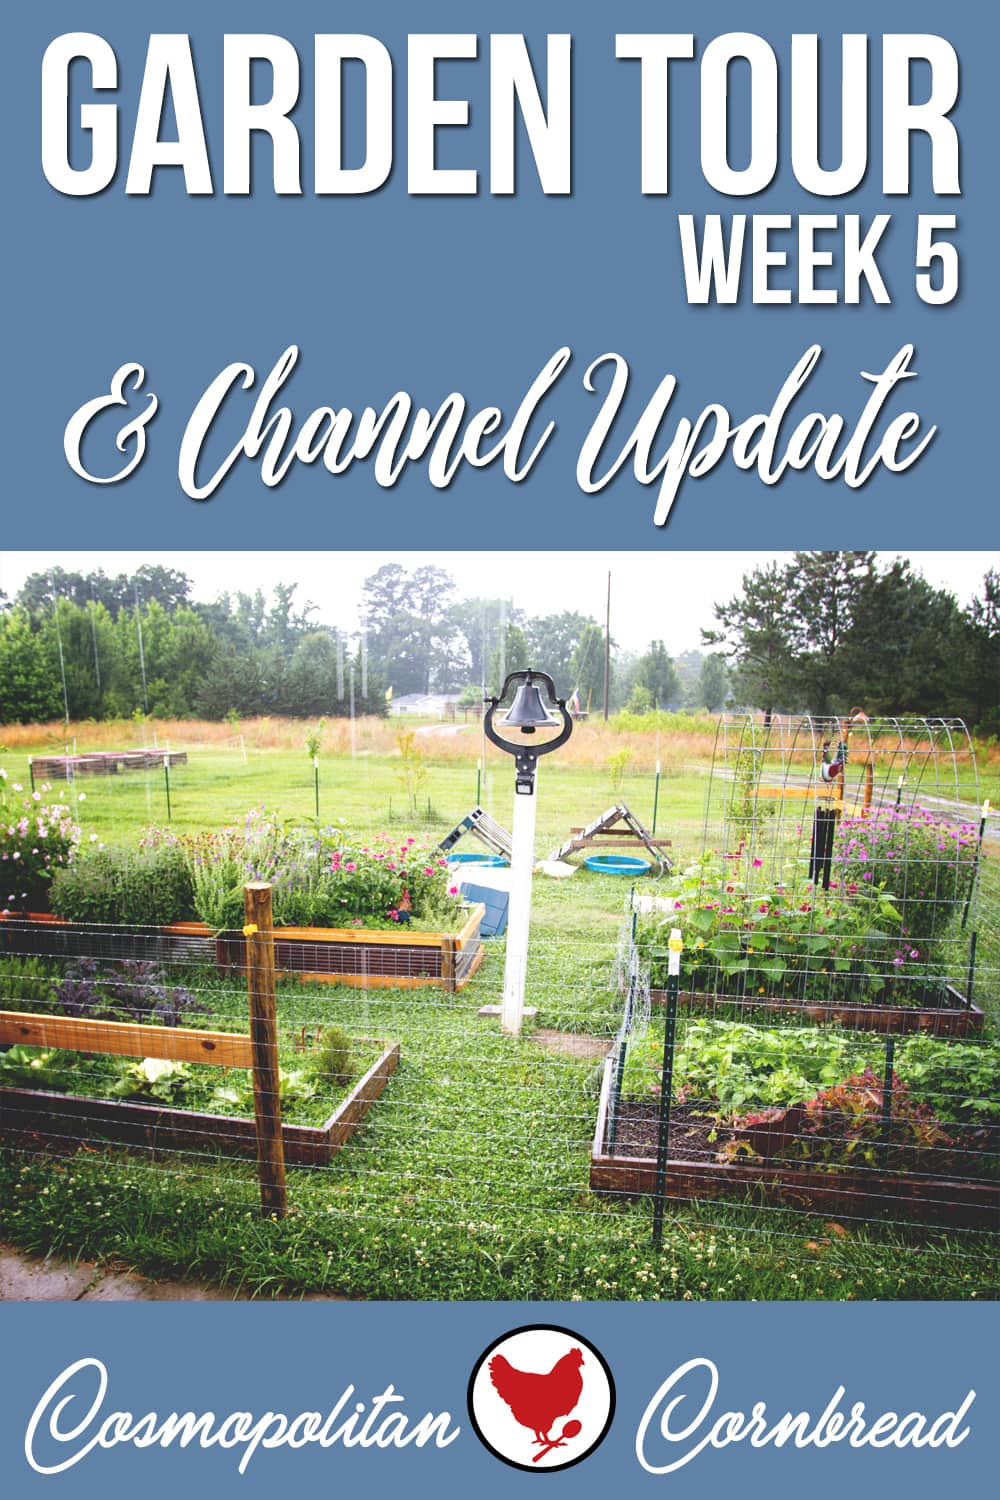 In this episode, we had the weekly garden tour that was squeezed in between rain showers. Some visitors came to the homestead, and I've made a minor change to the YouTube channel.